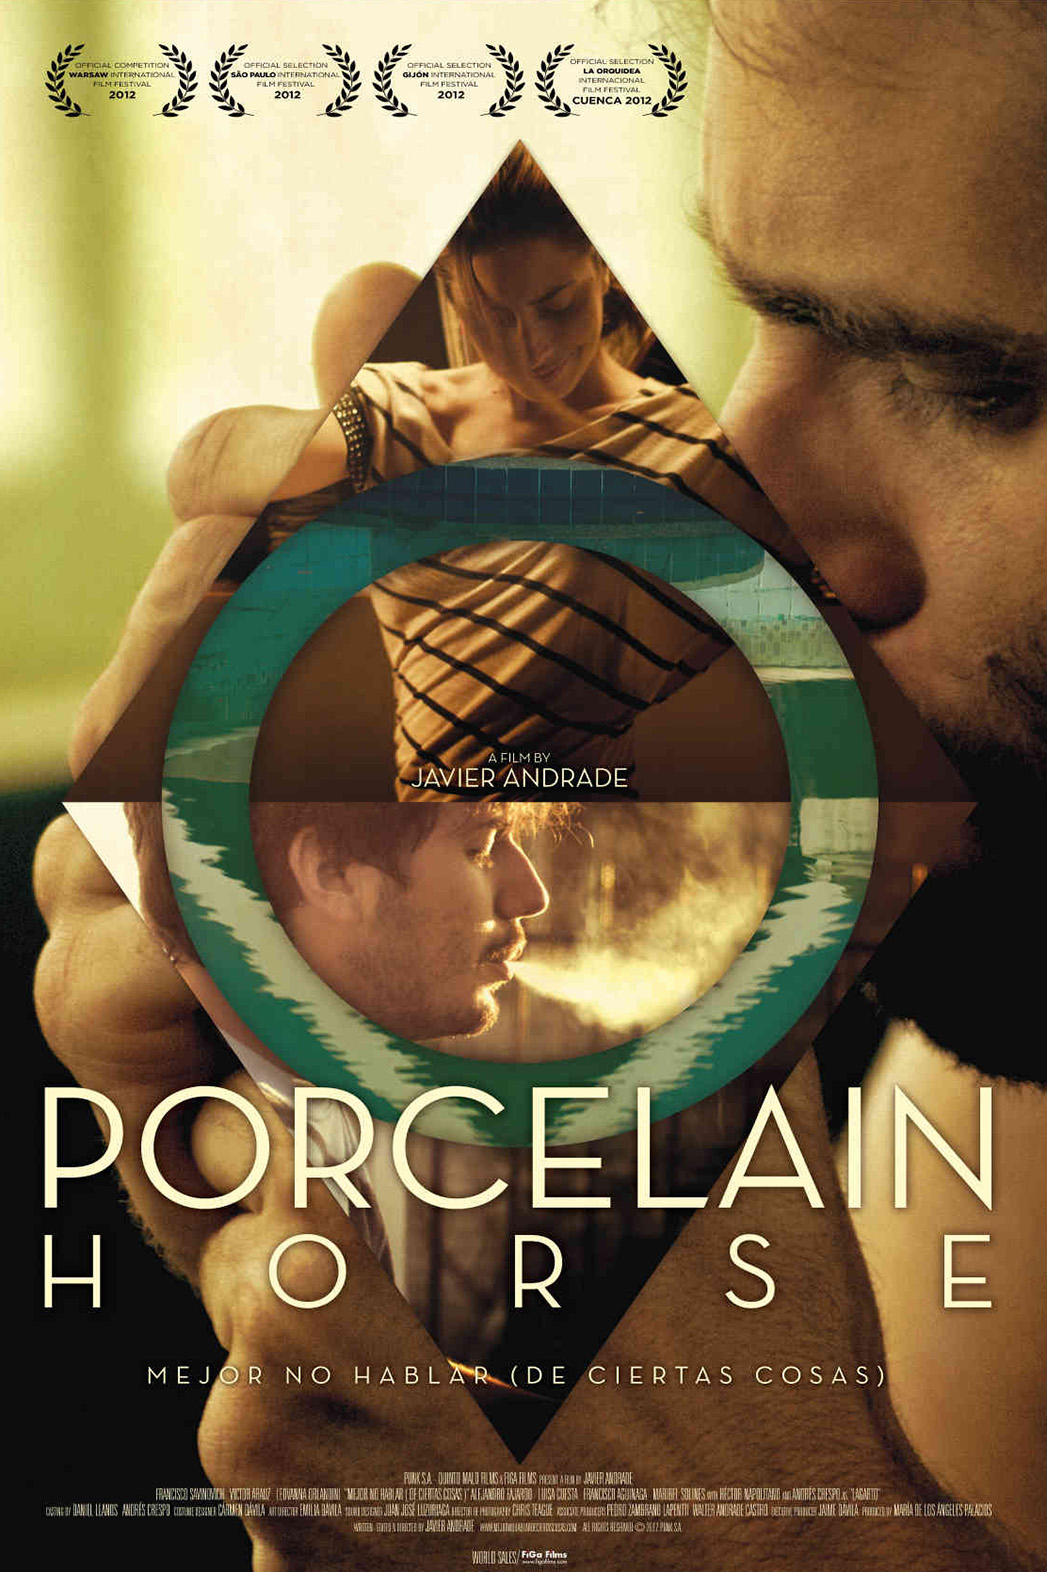 The Porcelain Horse